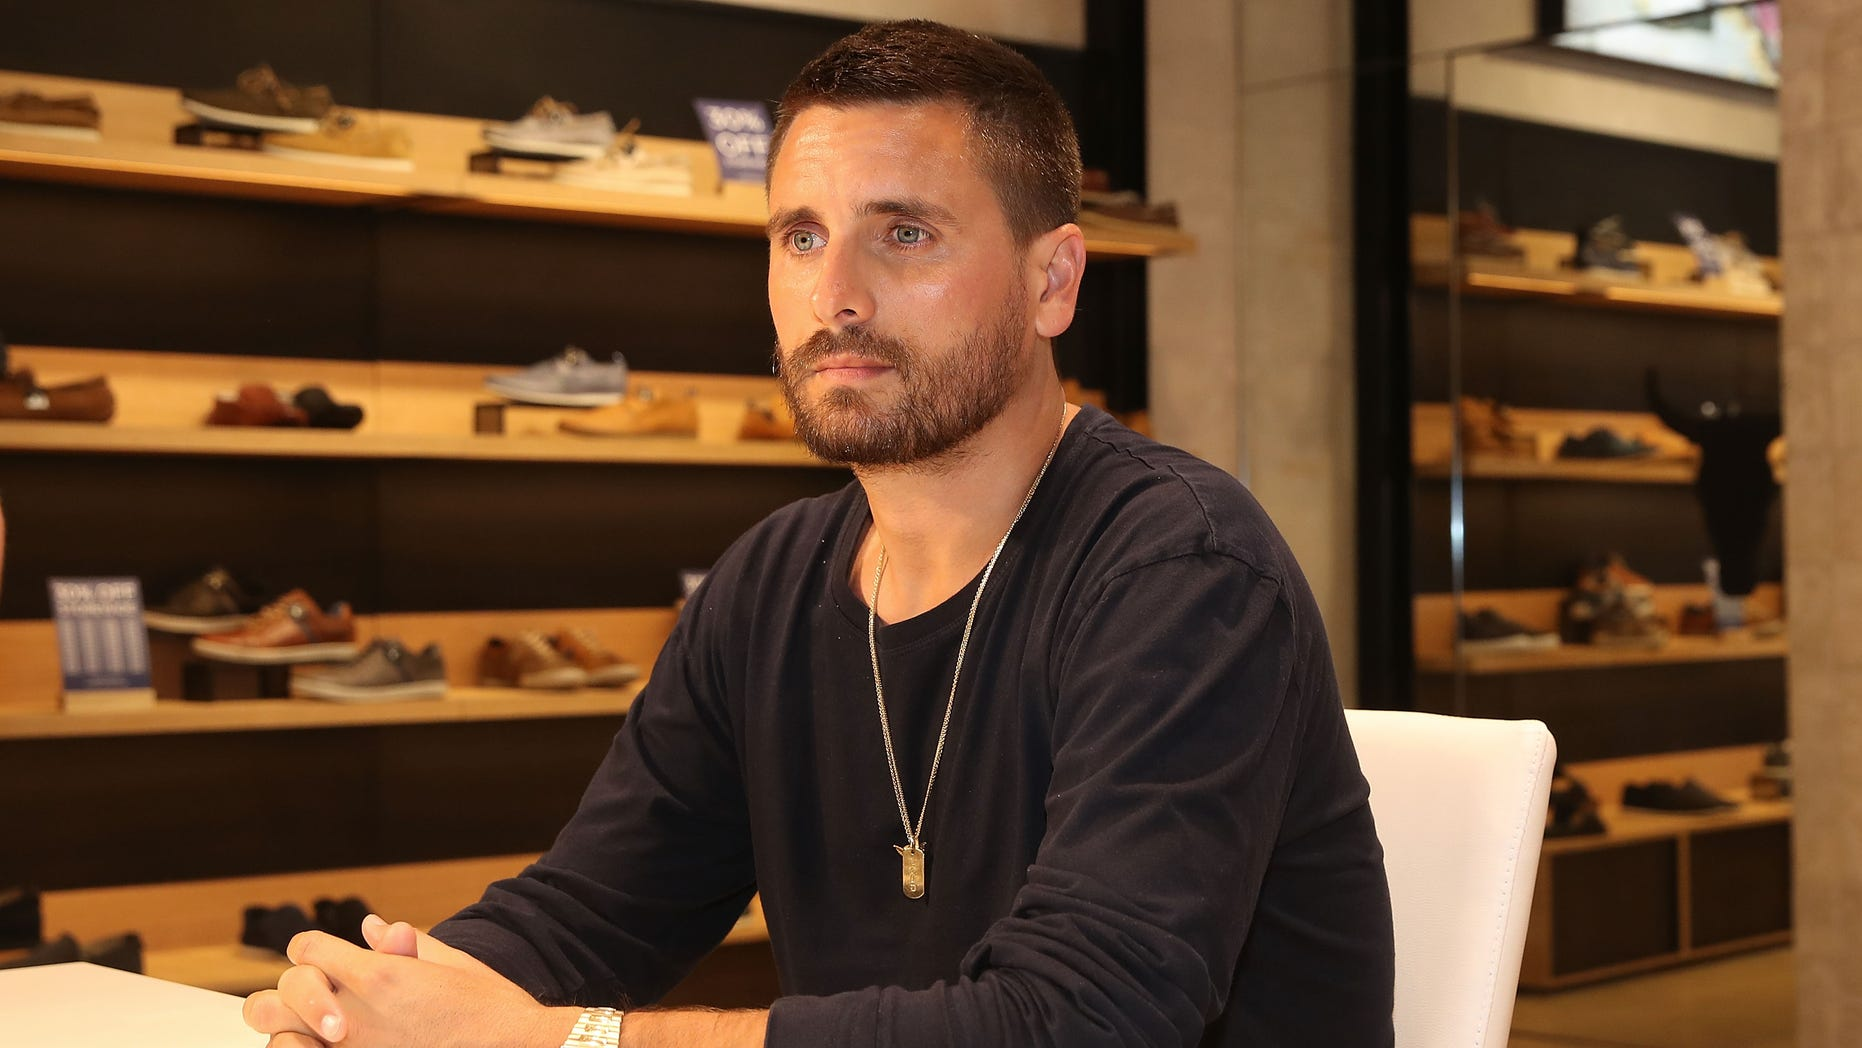 'Keeping Up With The Kardashians' star Scott Disick is in hot water after a social media post that users deemed racist.